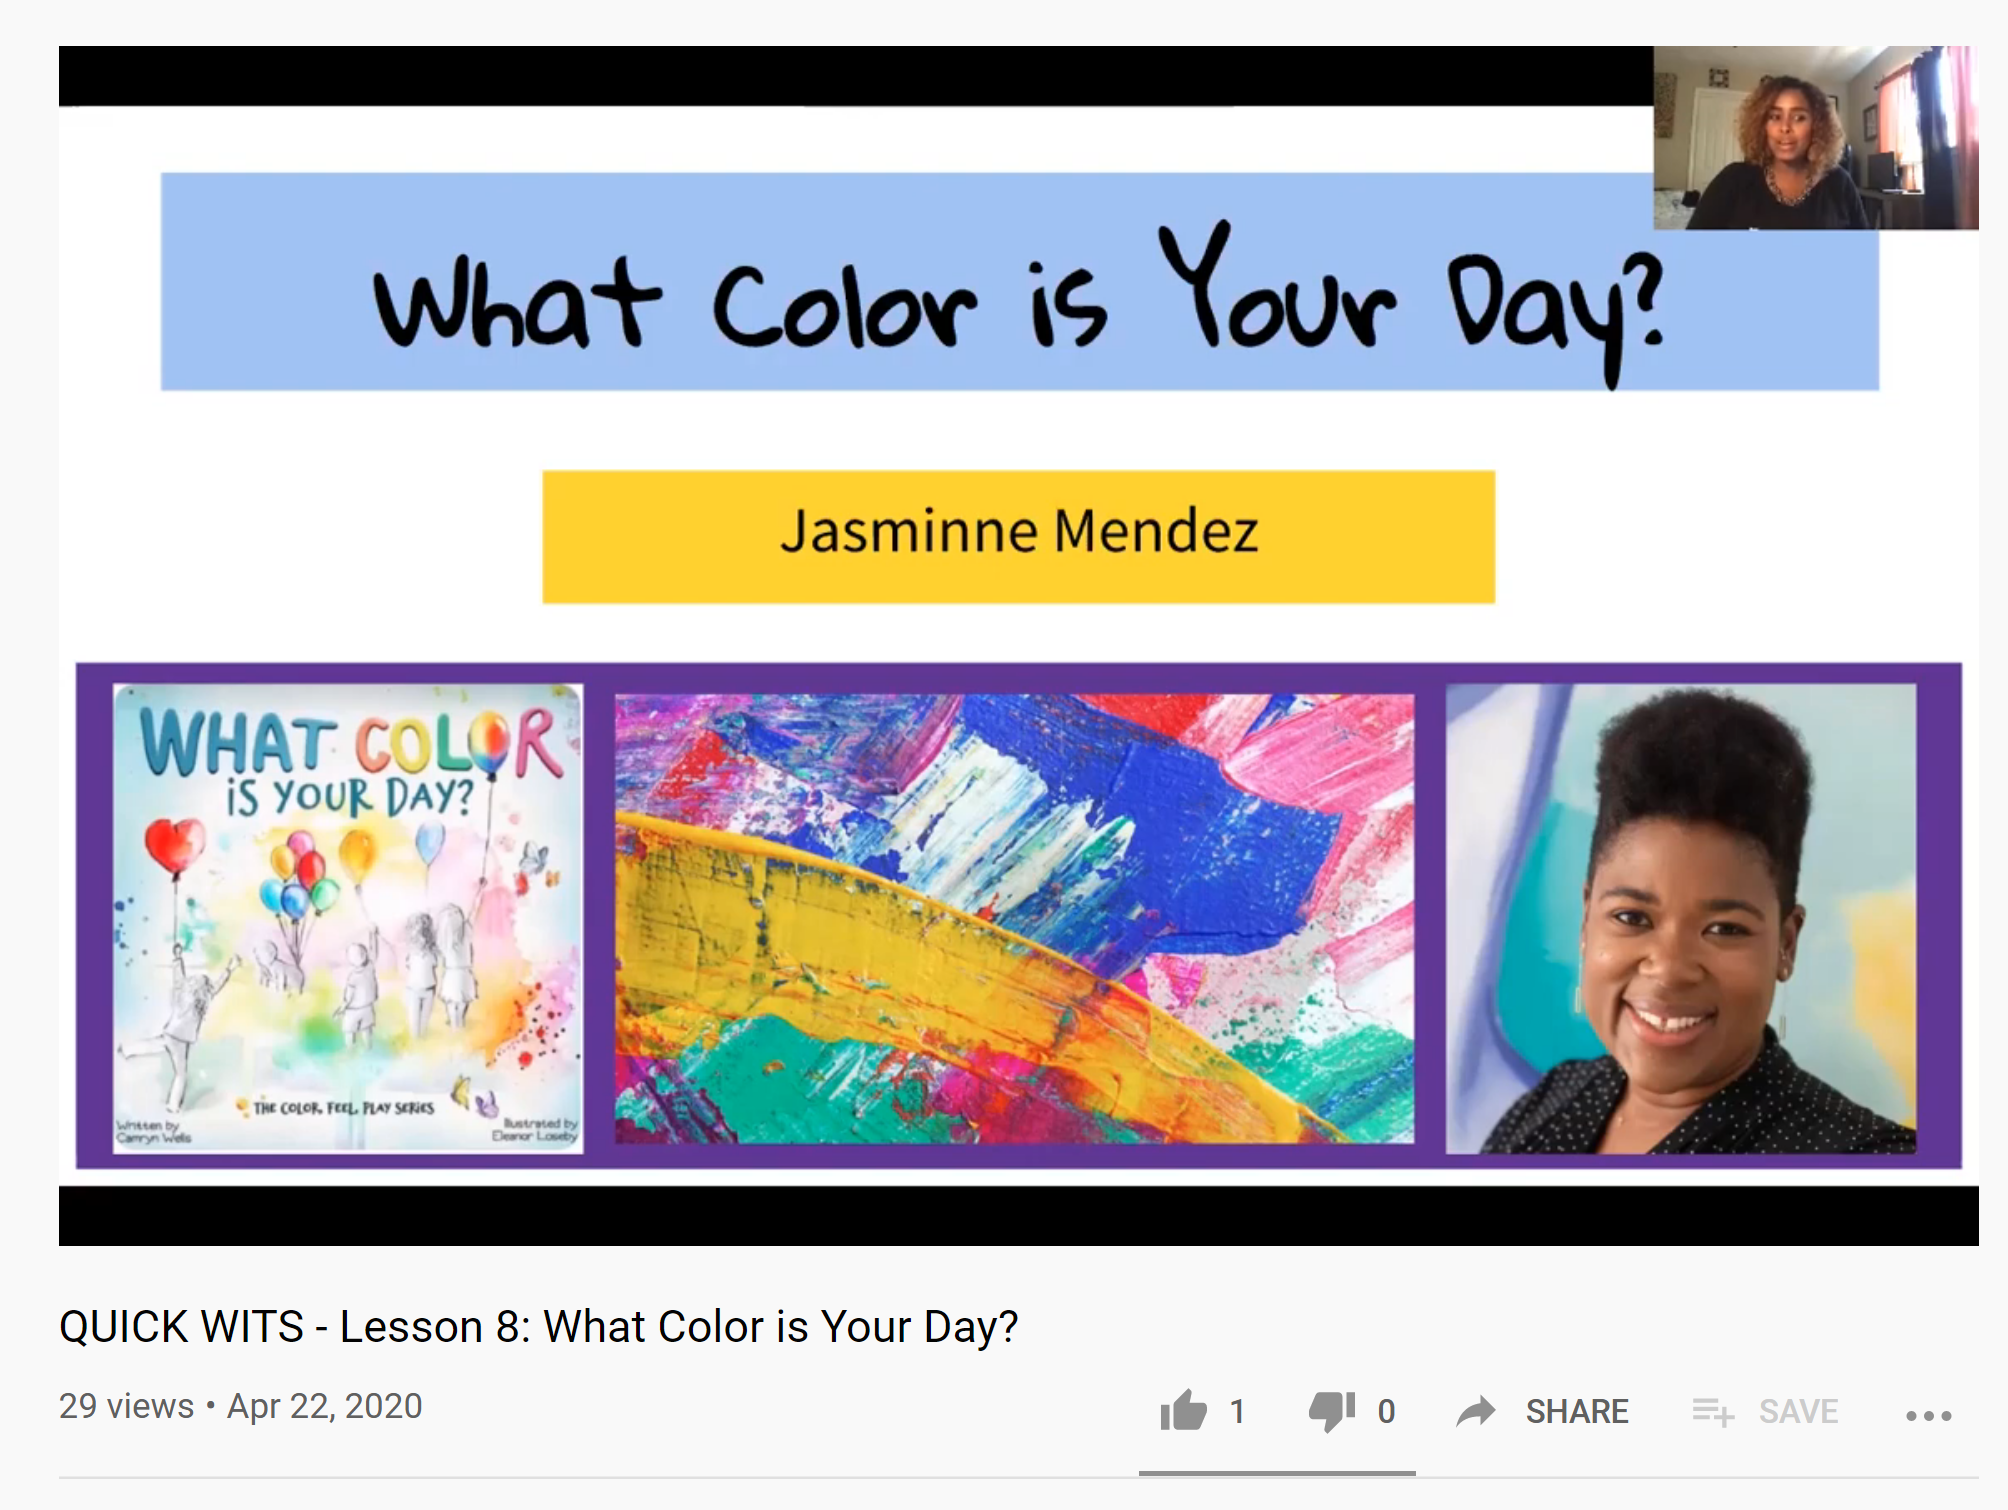 _1 QUICK WITS - Lesson 8 What Color is Your Day - YouTube